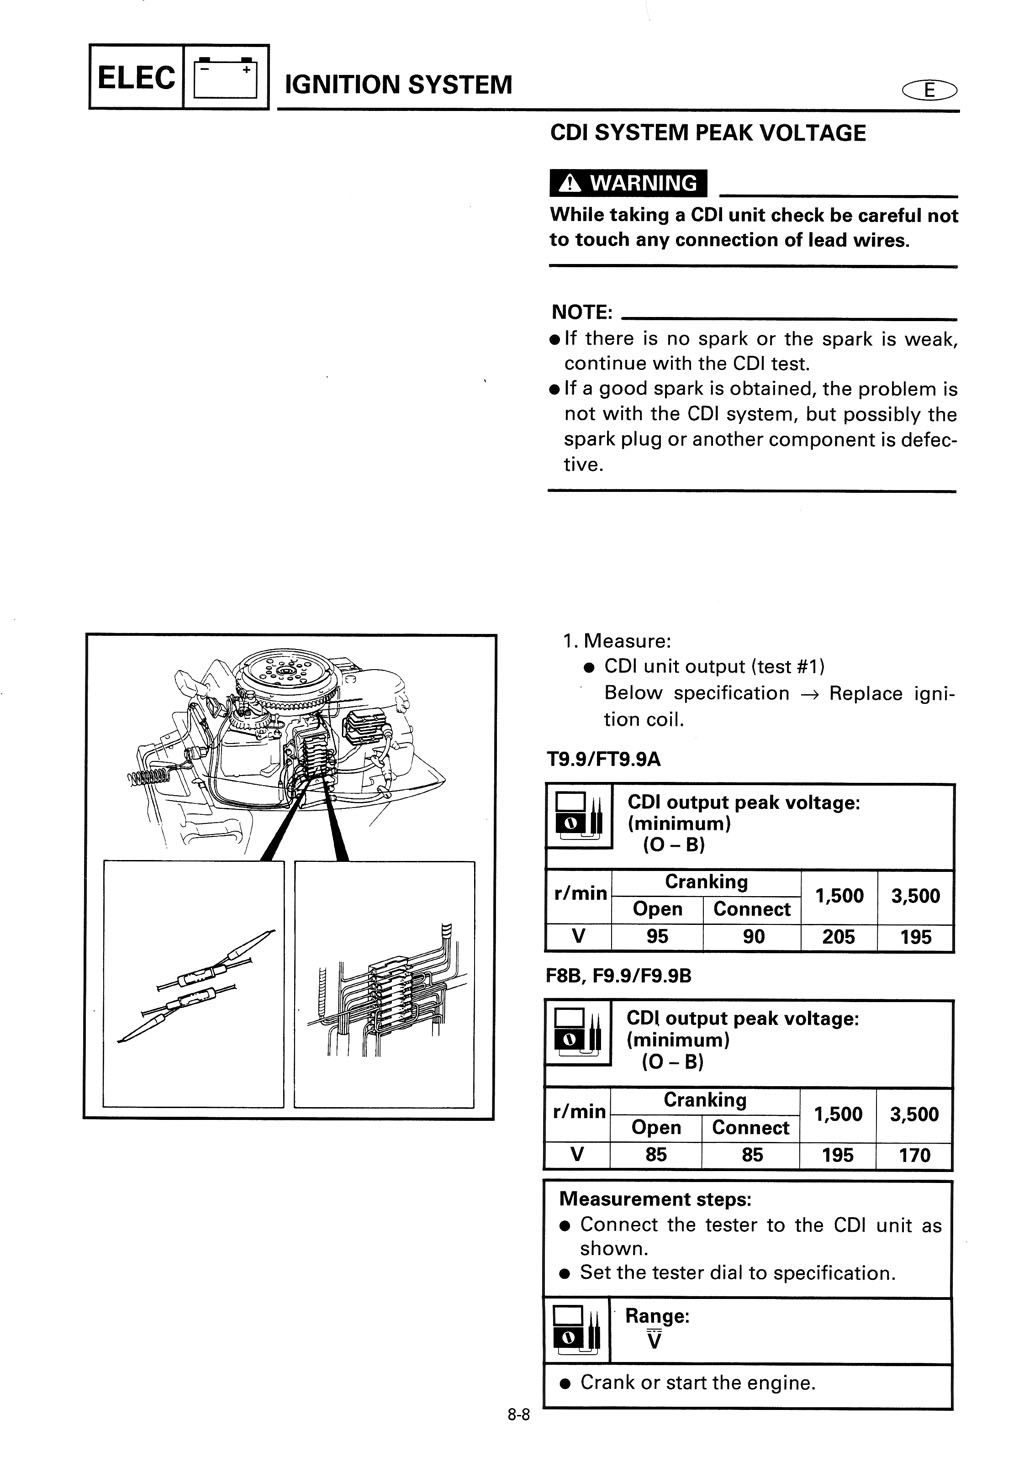 T99 Electrical Wiring Diagram Needed Pdq Owners Forum 3 Wire Cdi Http Zerotocruisingcom Videos Zt Page2